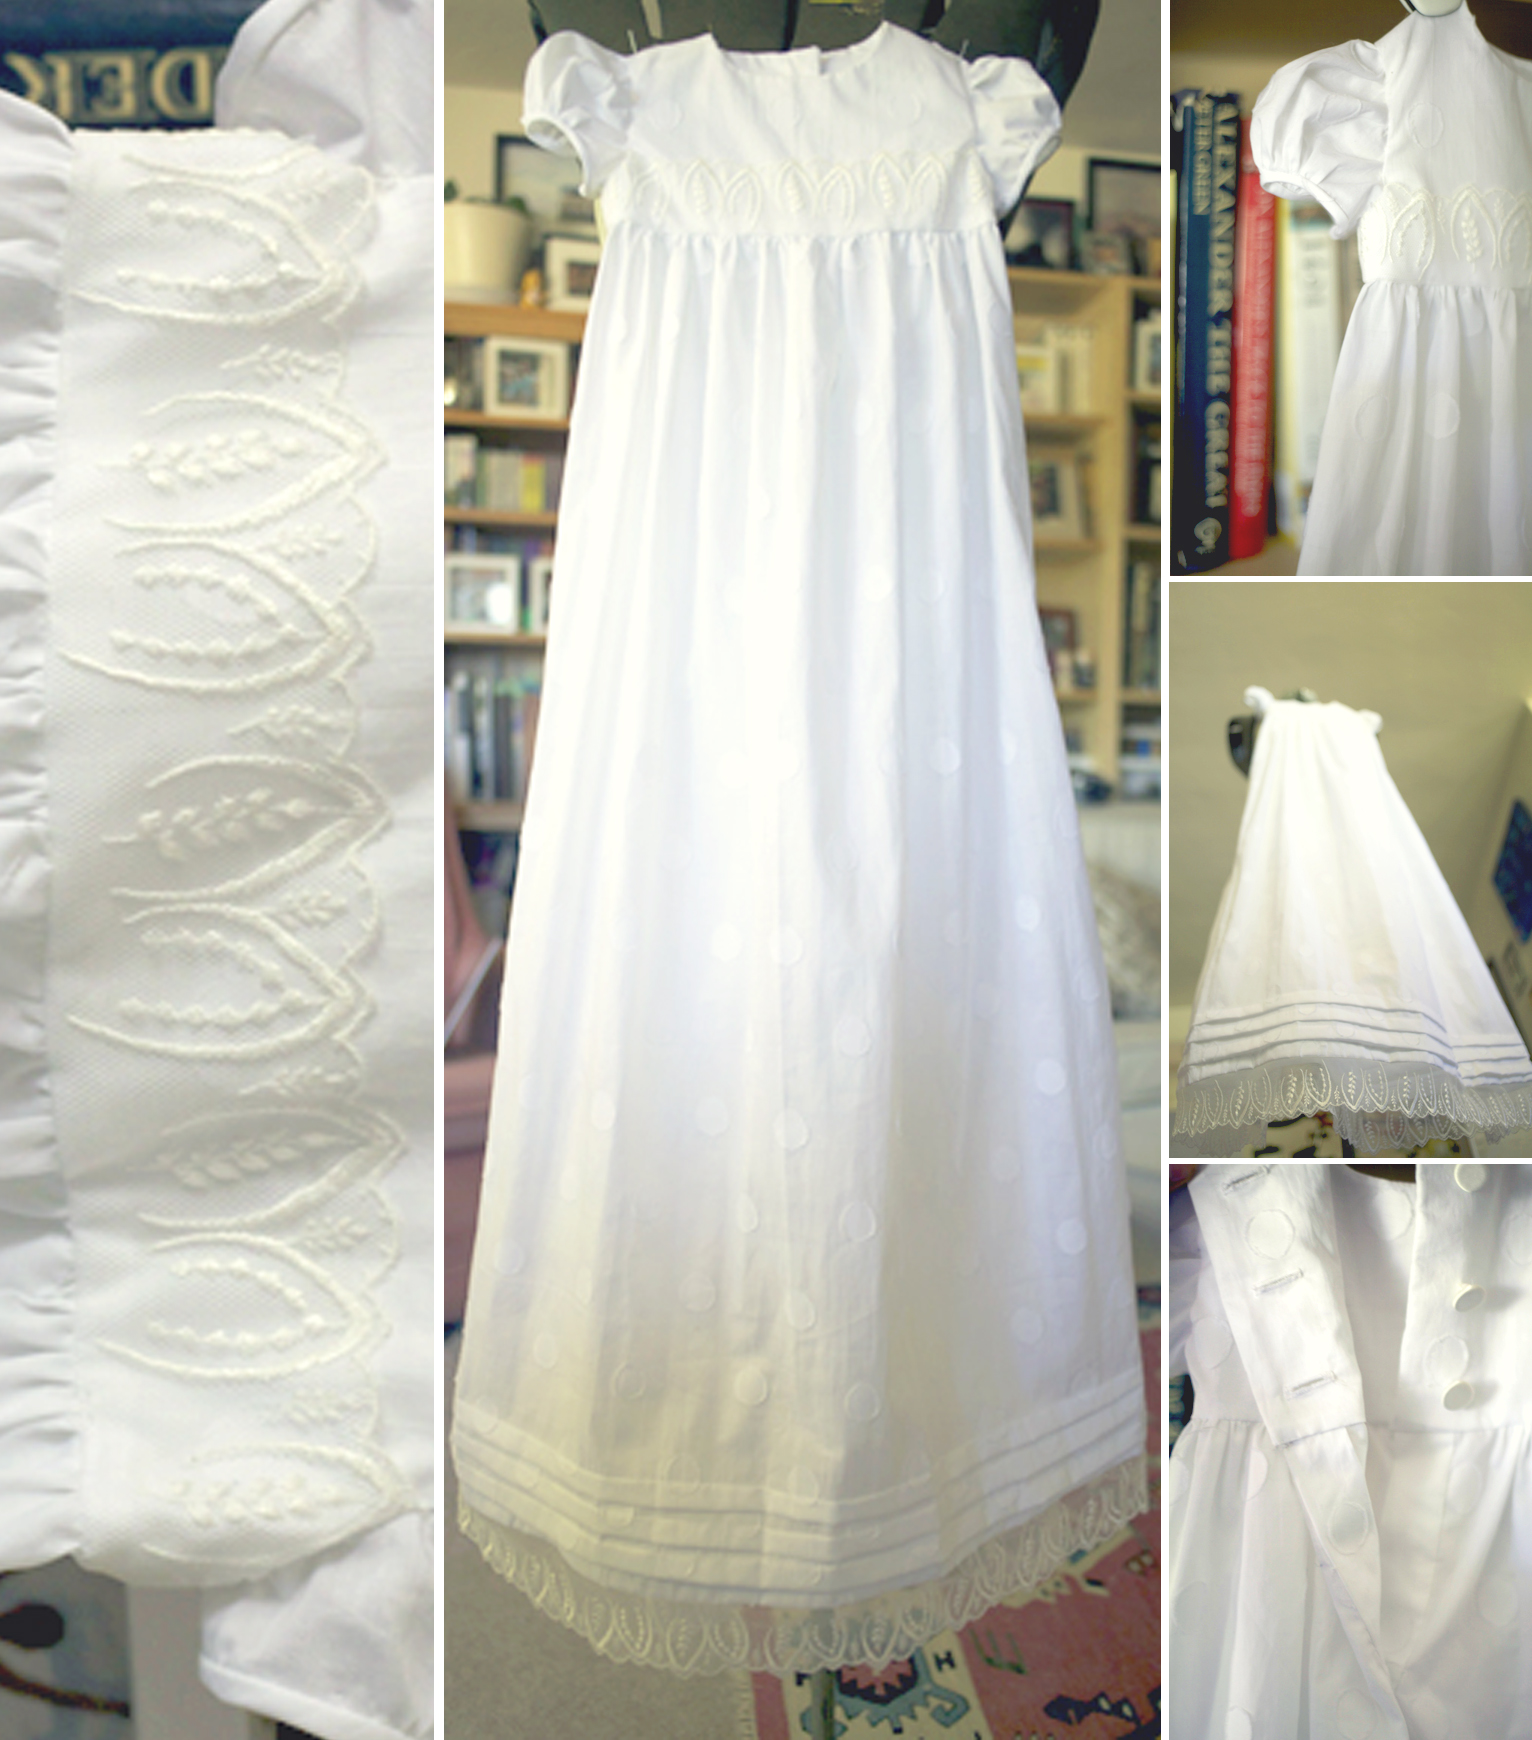 handmade christening gown | eBay - Electronics, Cars, Fashion